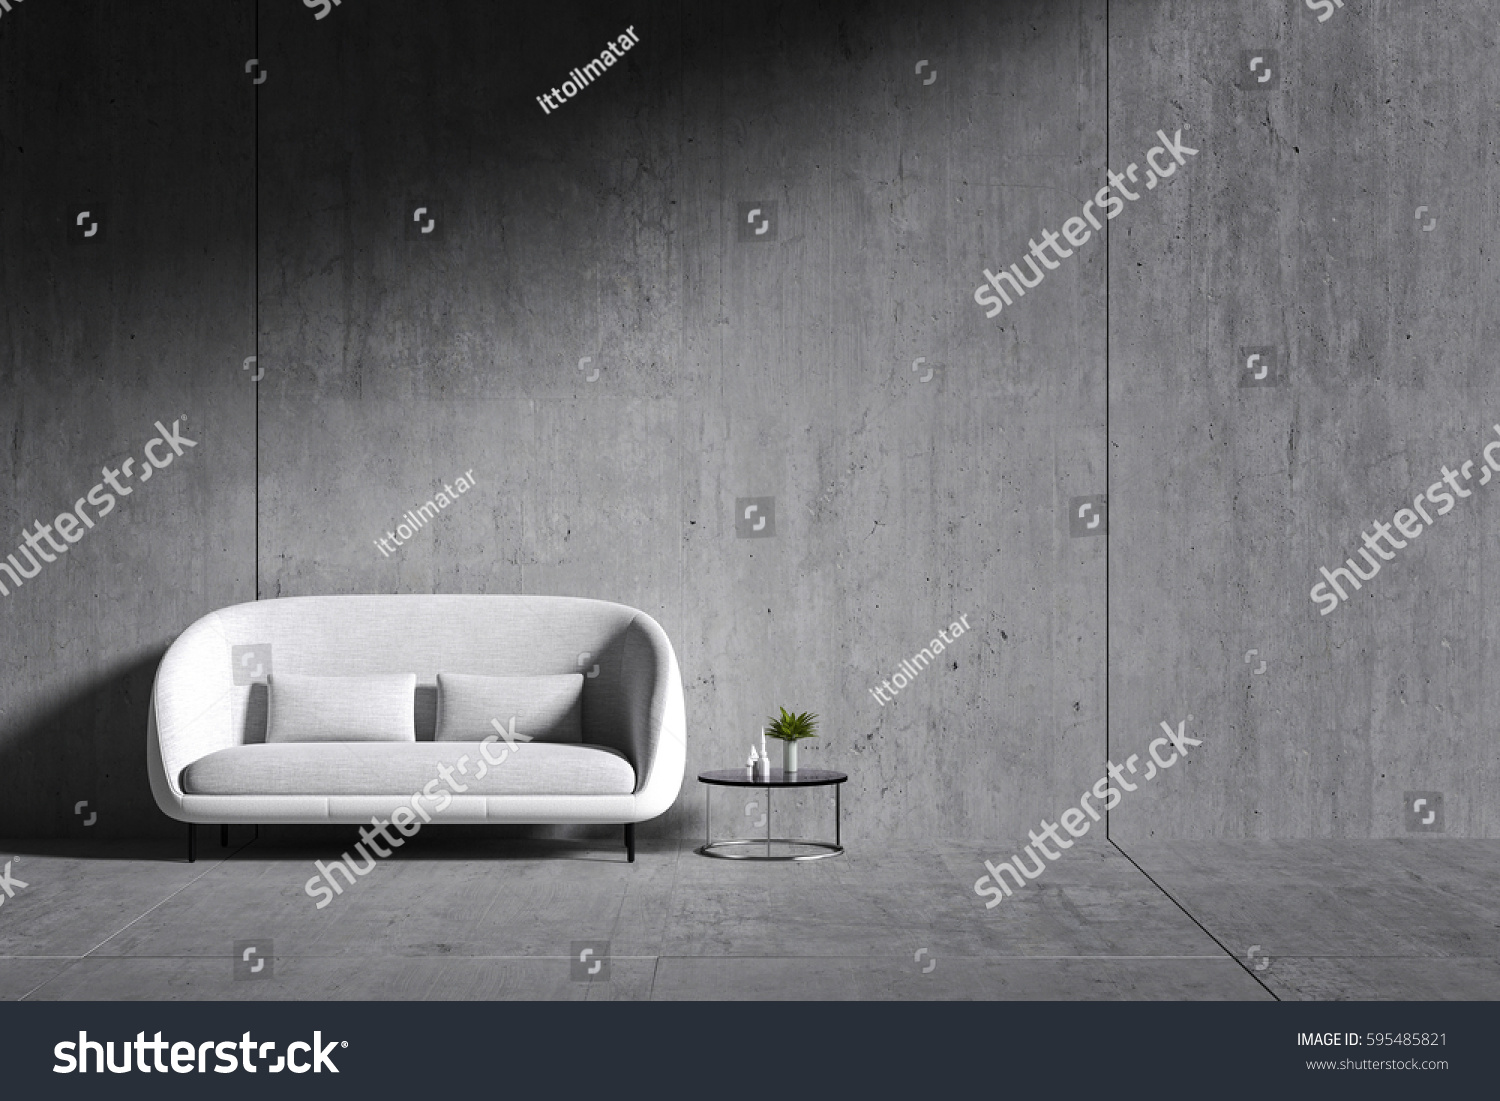 3d Rendering Room Minimalist Interior Light And Shadow With White Fabric Chair Book